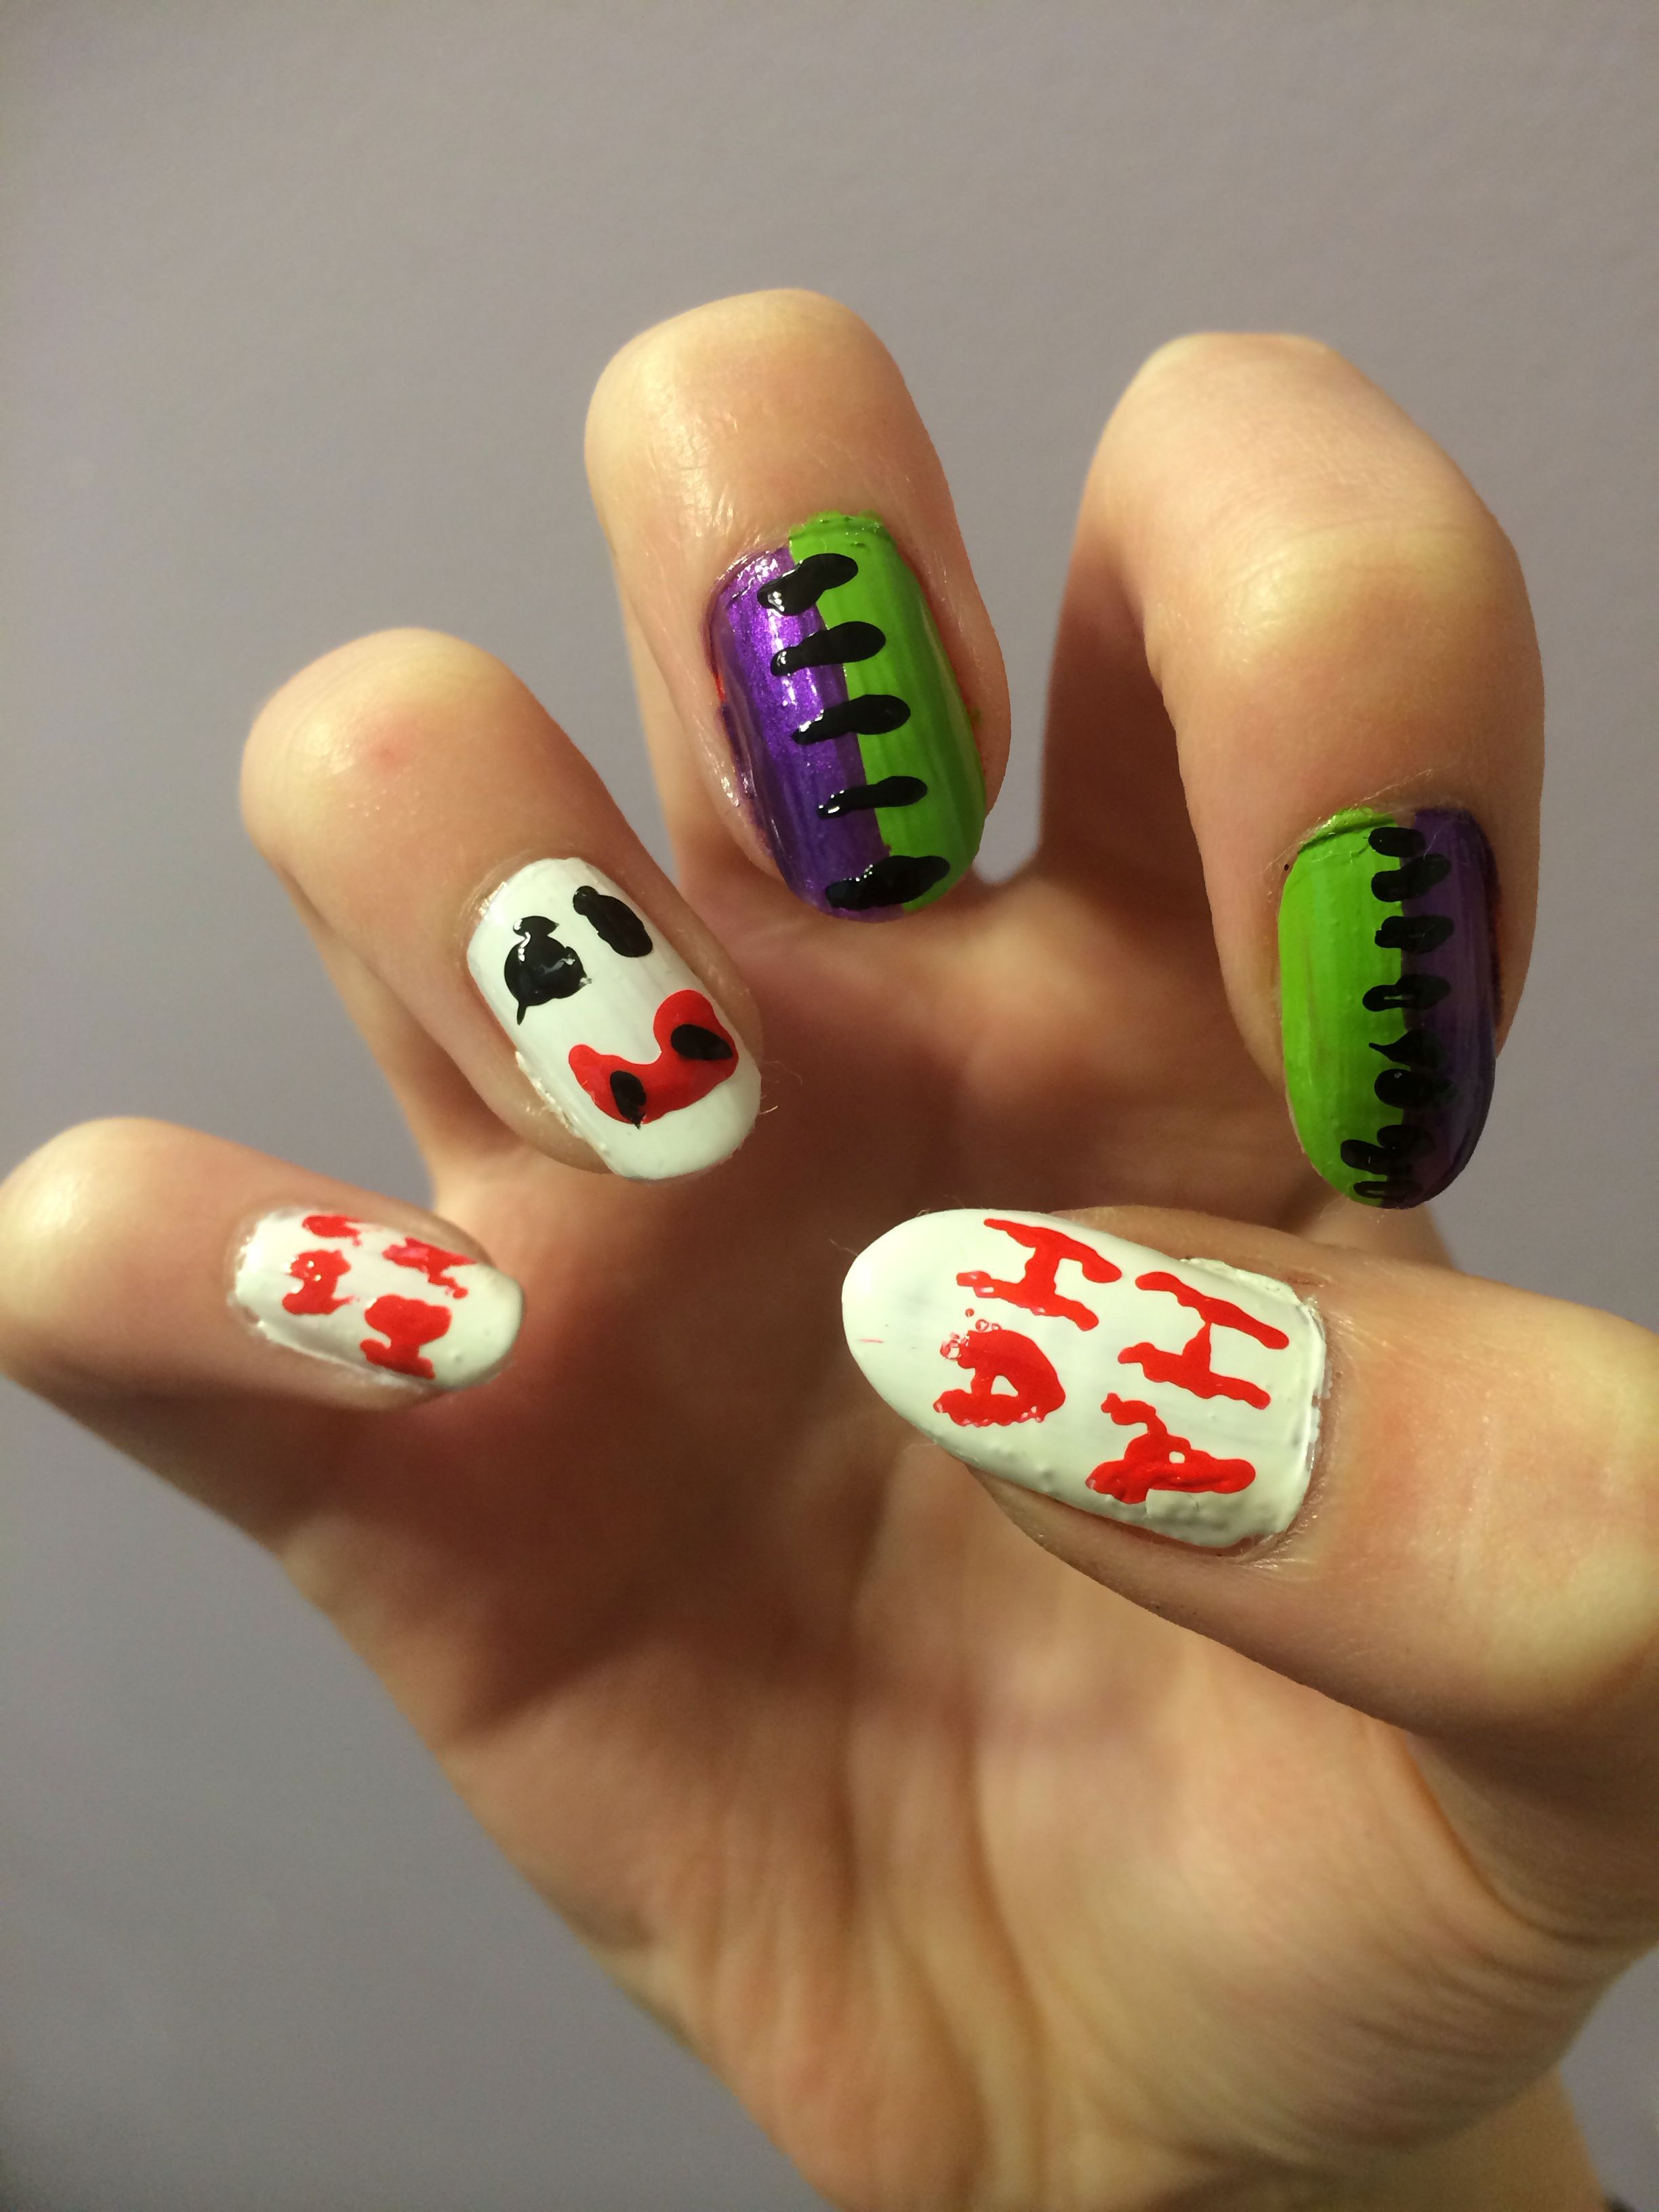 The Joker nails DC #NailArt | Nail Art | Pinterest | Joker